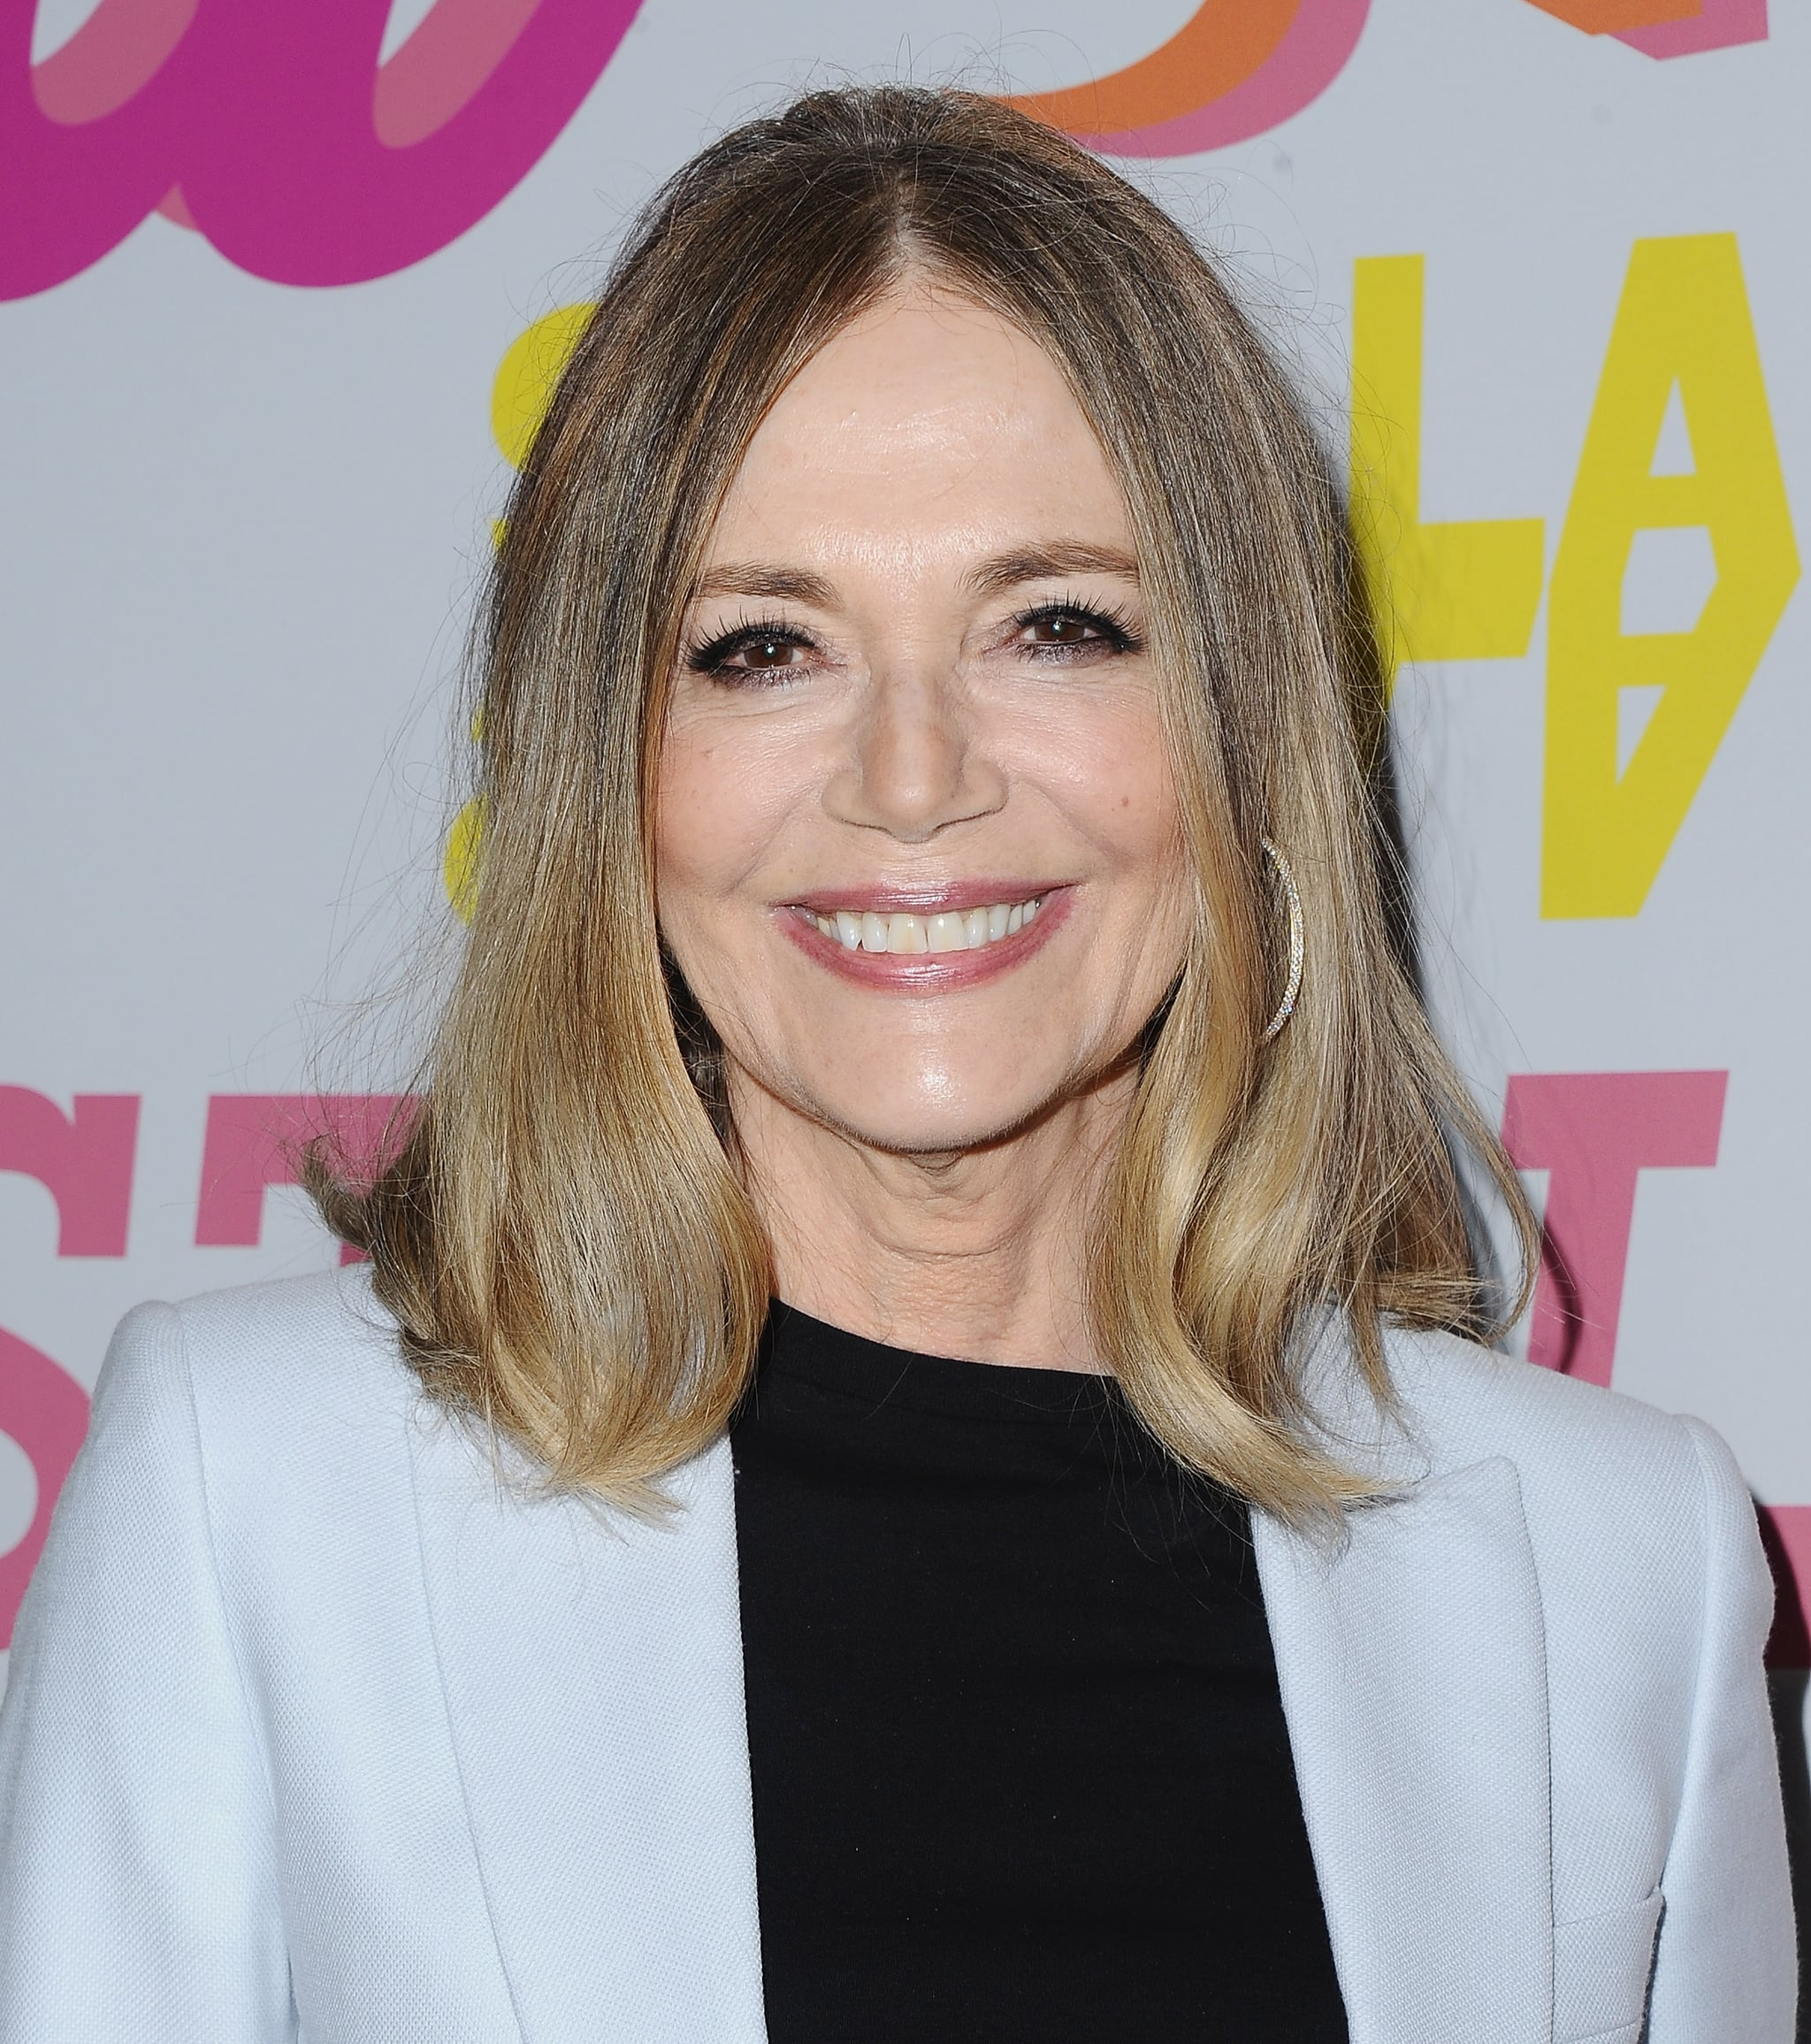 LOS ANGELES, CA - JANUARY 16:  Peggy Lipton attends Stella McCartney's Autumn 2018 Collection Launch on January 16, 2018 in Los Angeles, California.  (Photo by Jon Kopaloff/FilmMagic)